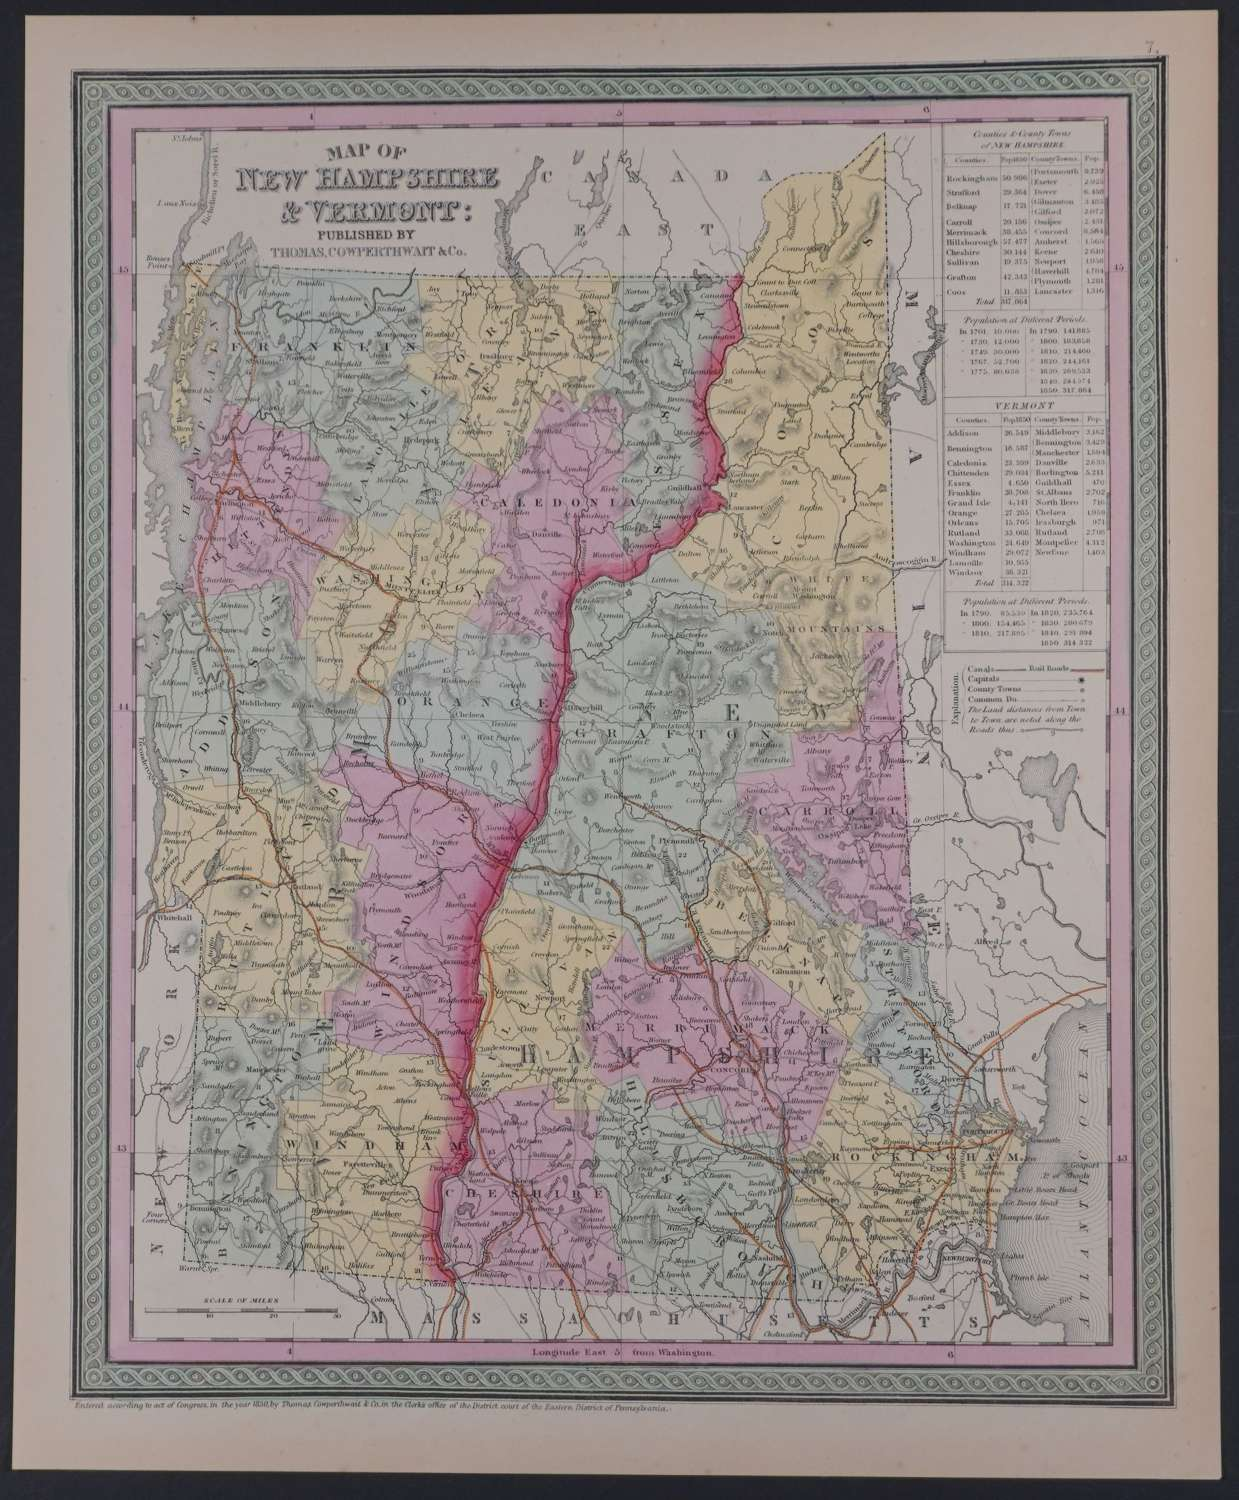 Map of New Hampshire & Vermont by Thomas Cowperthwait & Co